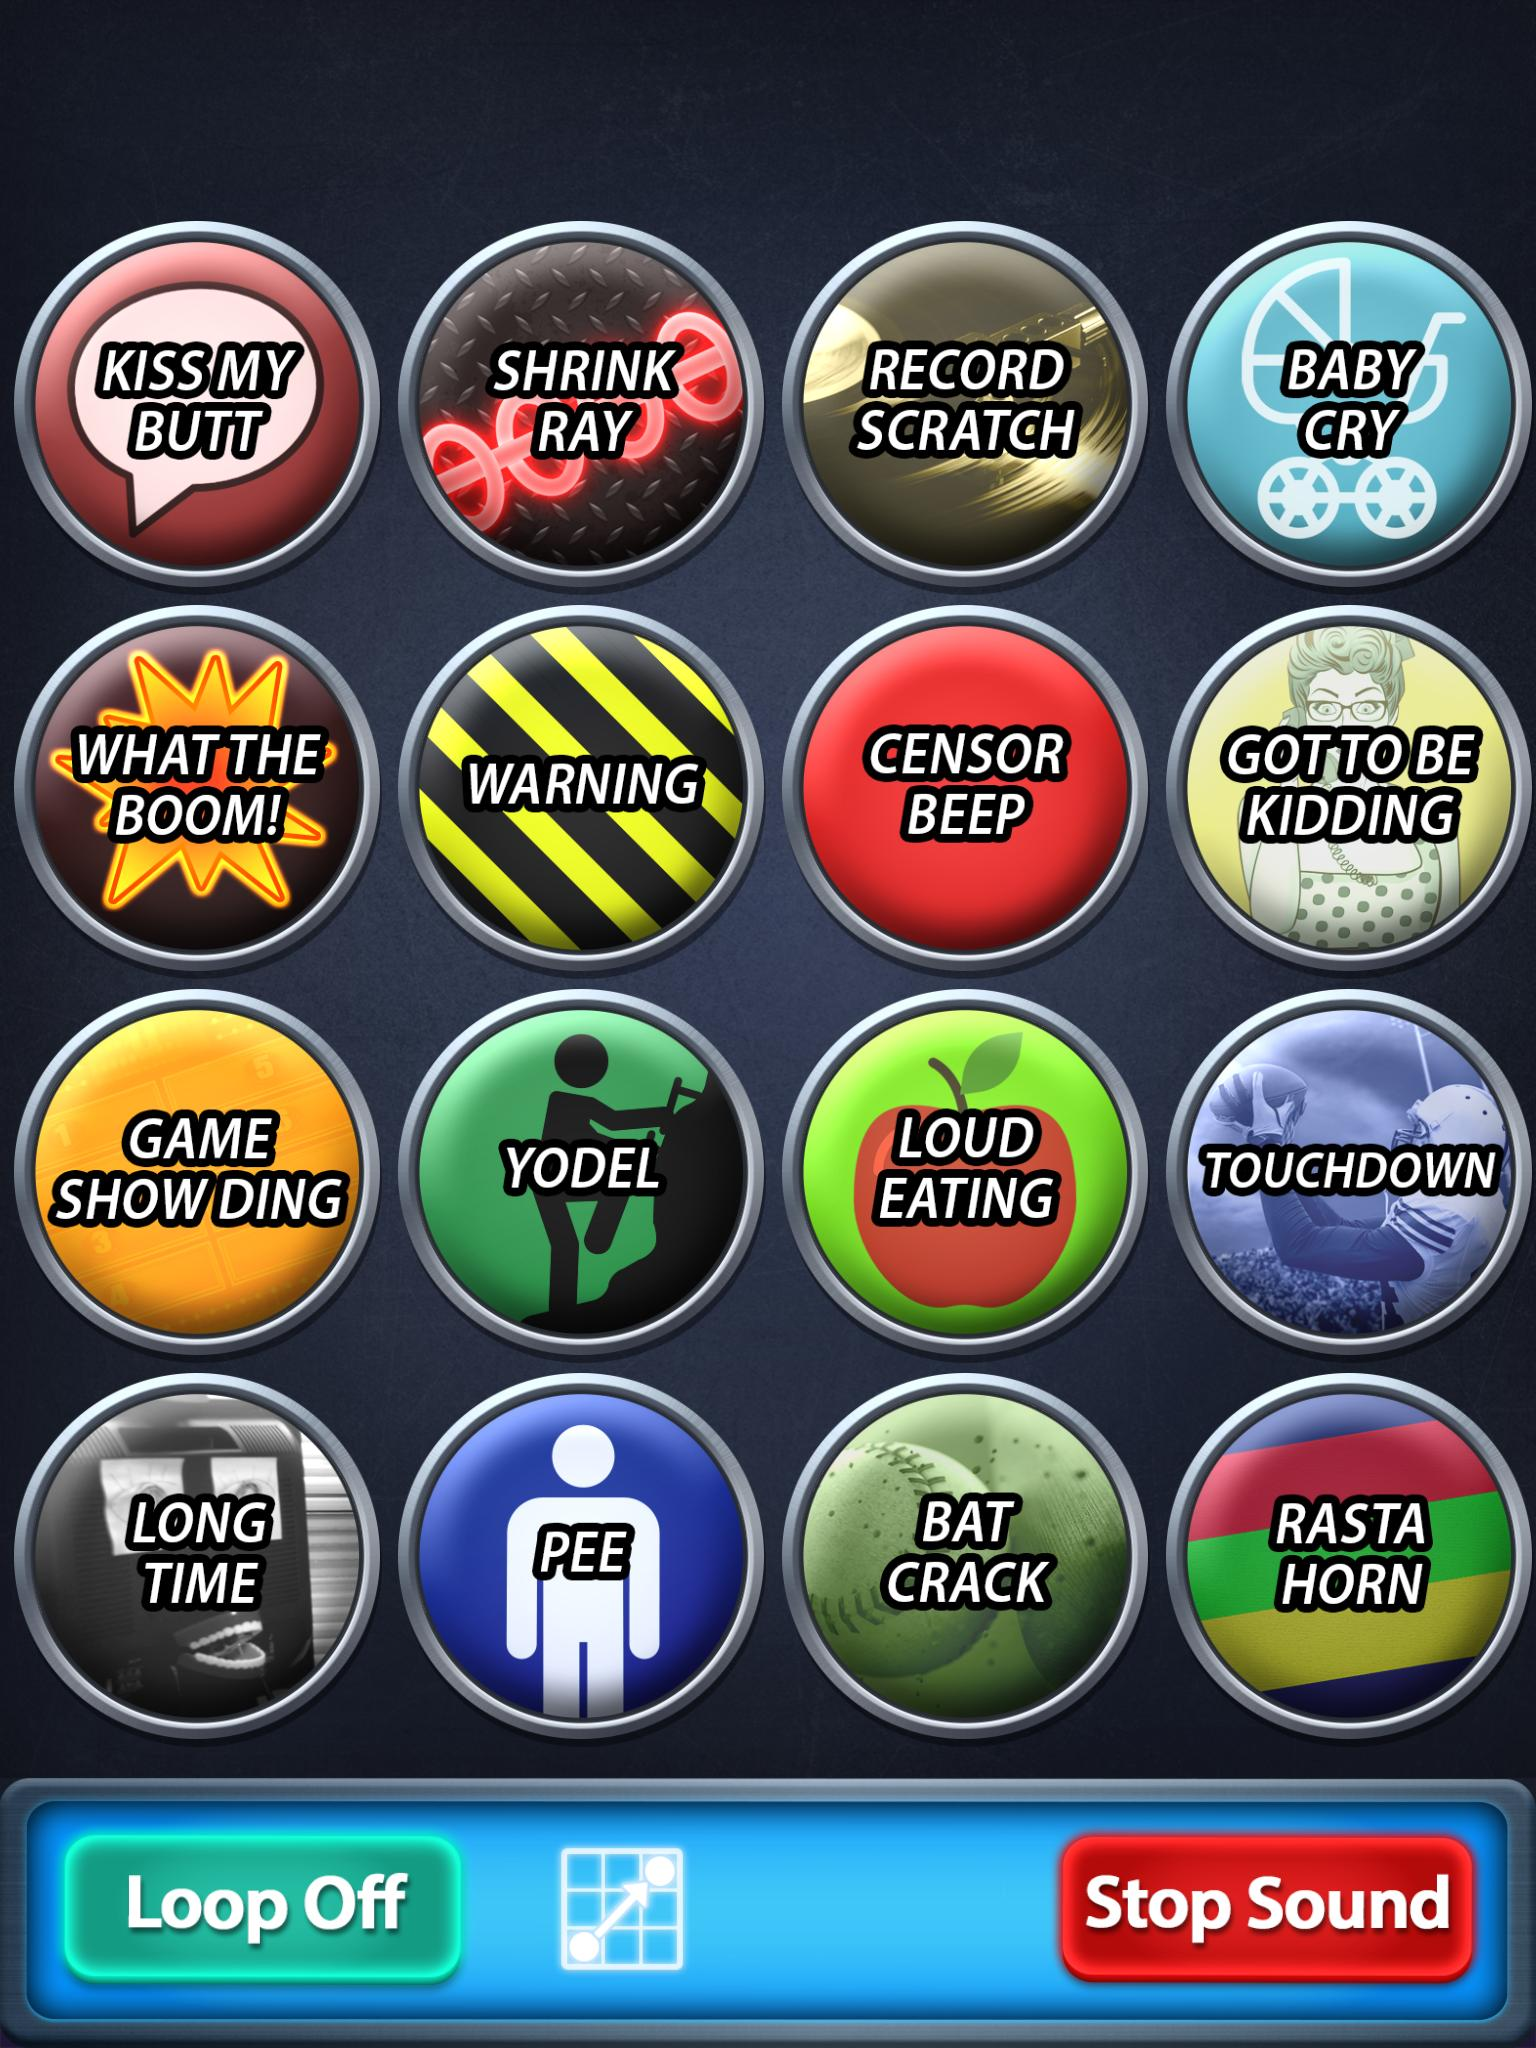 Super Soundbox 120 Free Sound Effects! for Android - APK Download